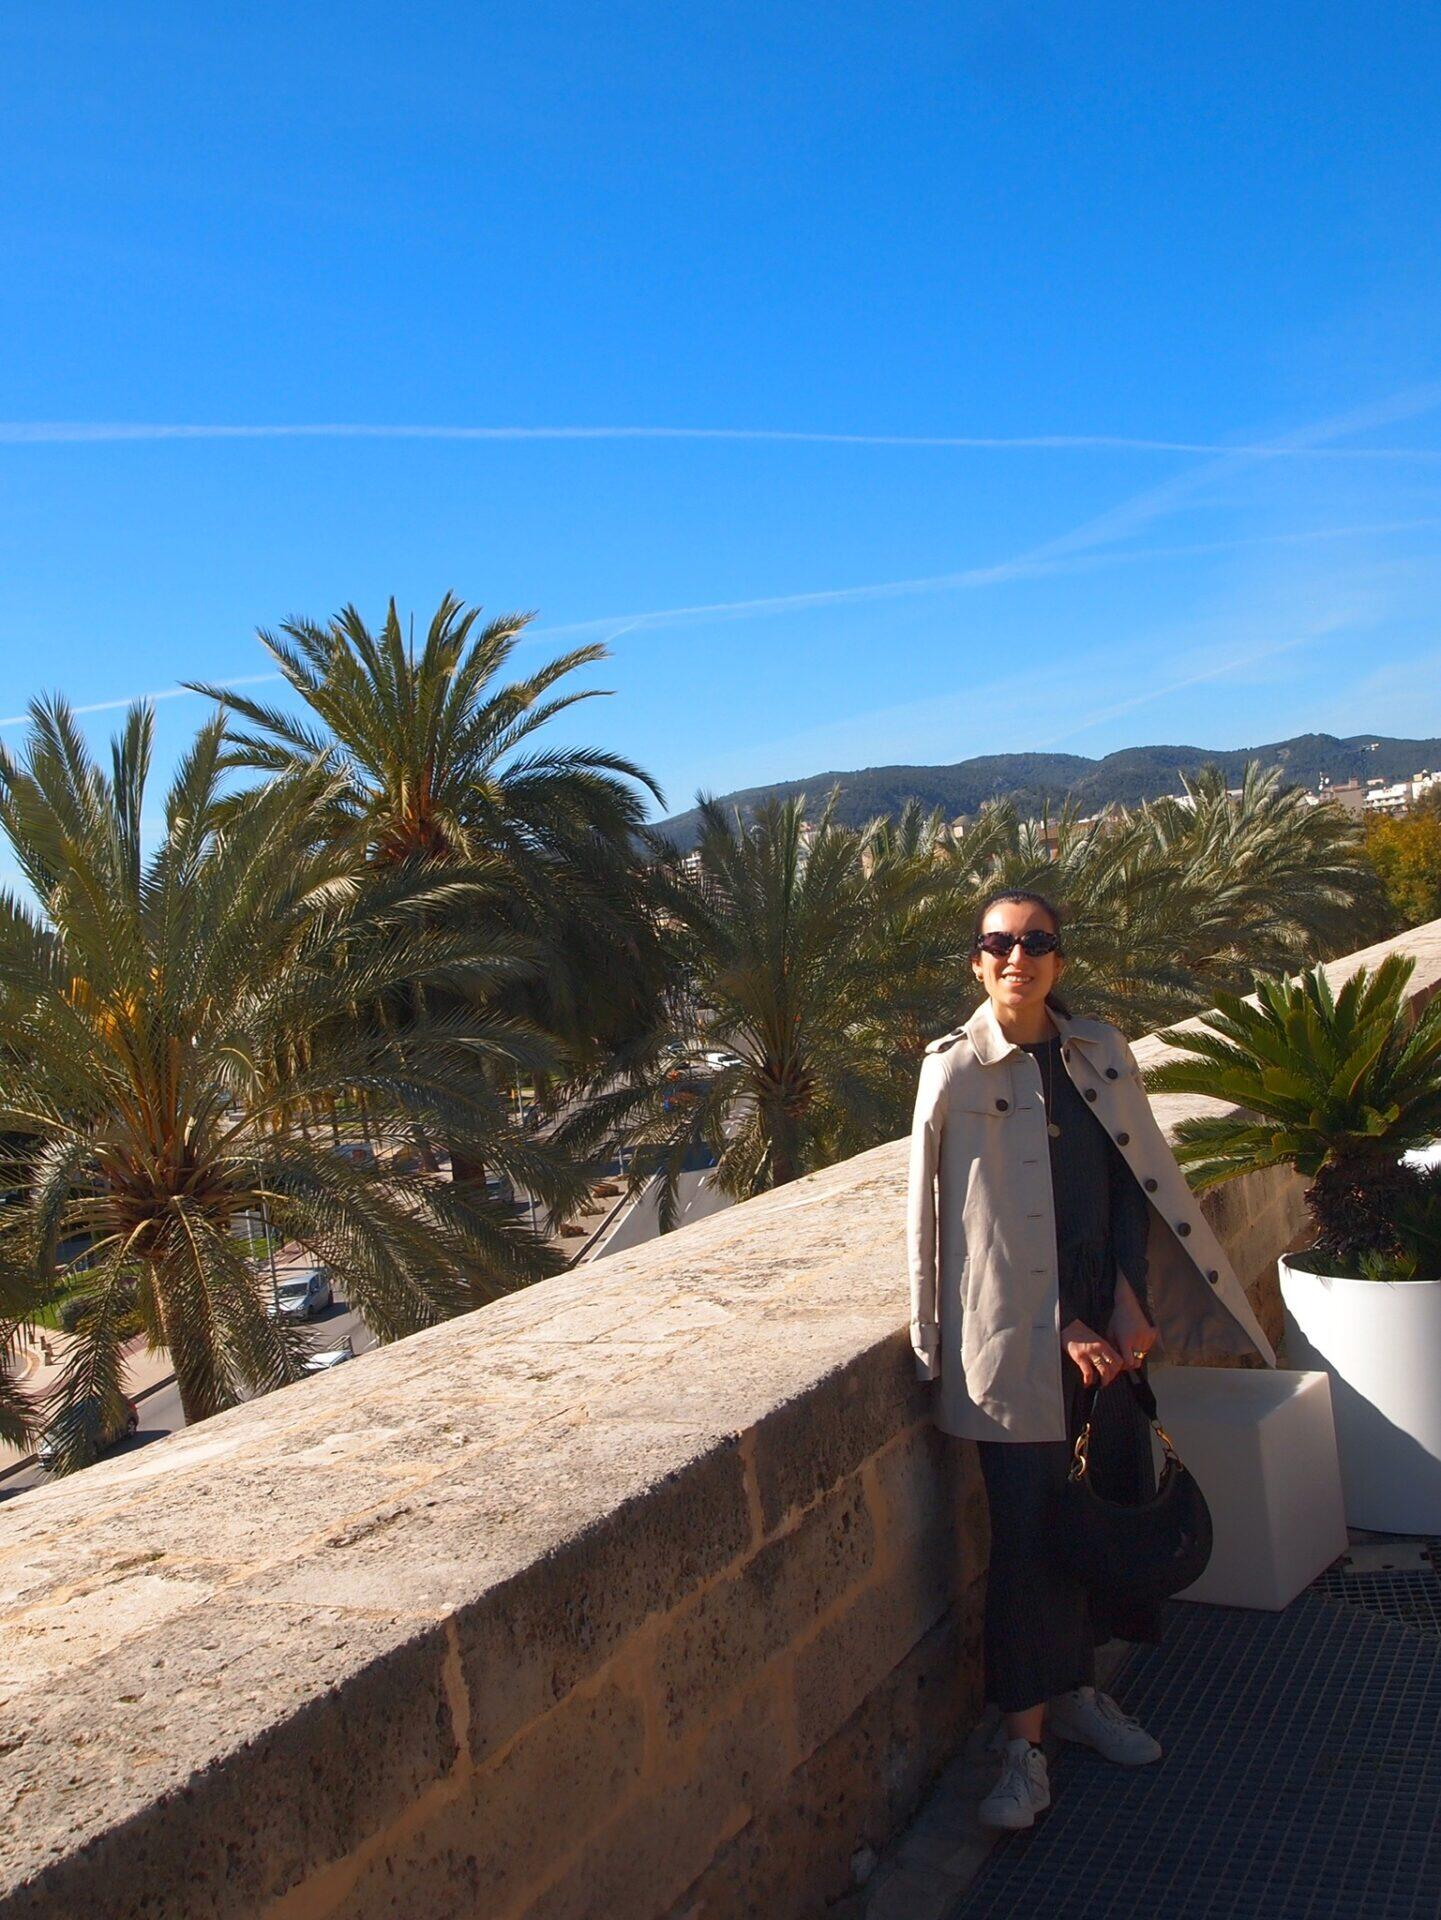 The 2 Night Travel Guide to Palma, Mallorca